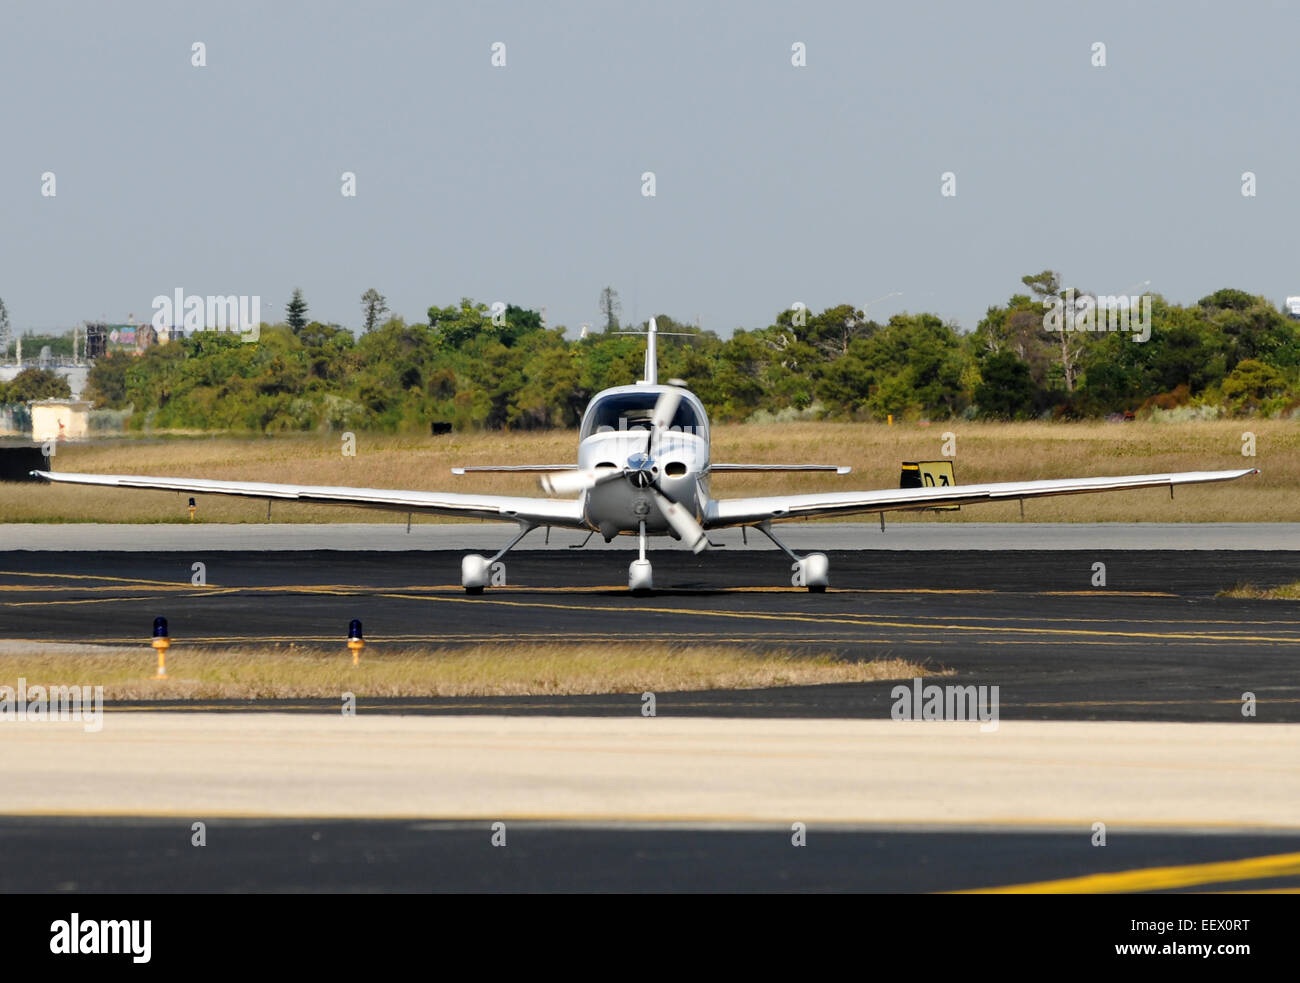 Light private airplane taxiing on the ground - Stock Image